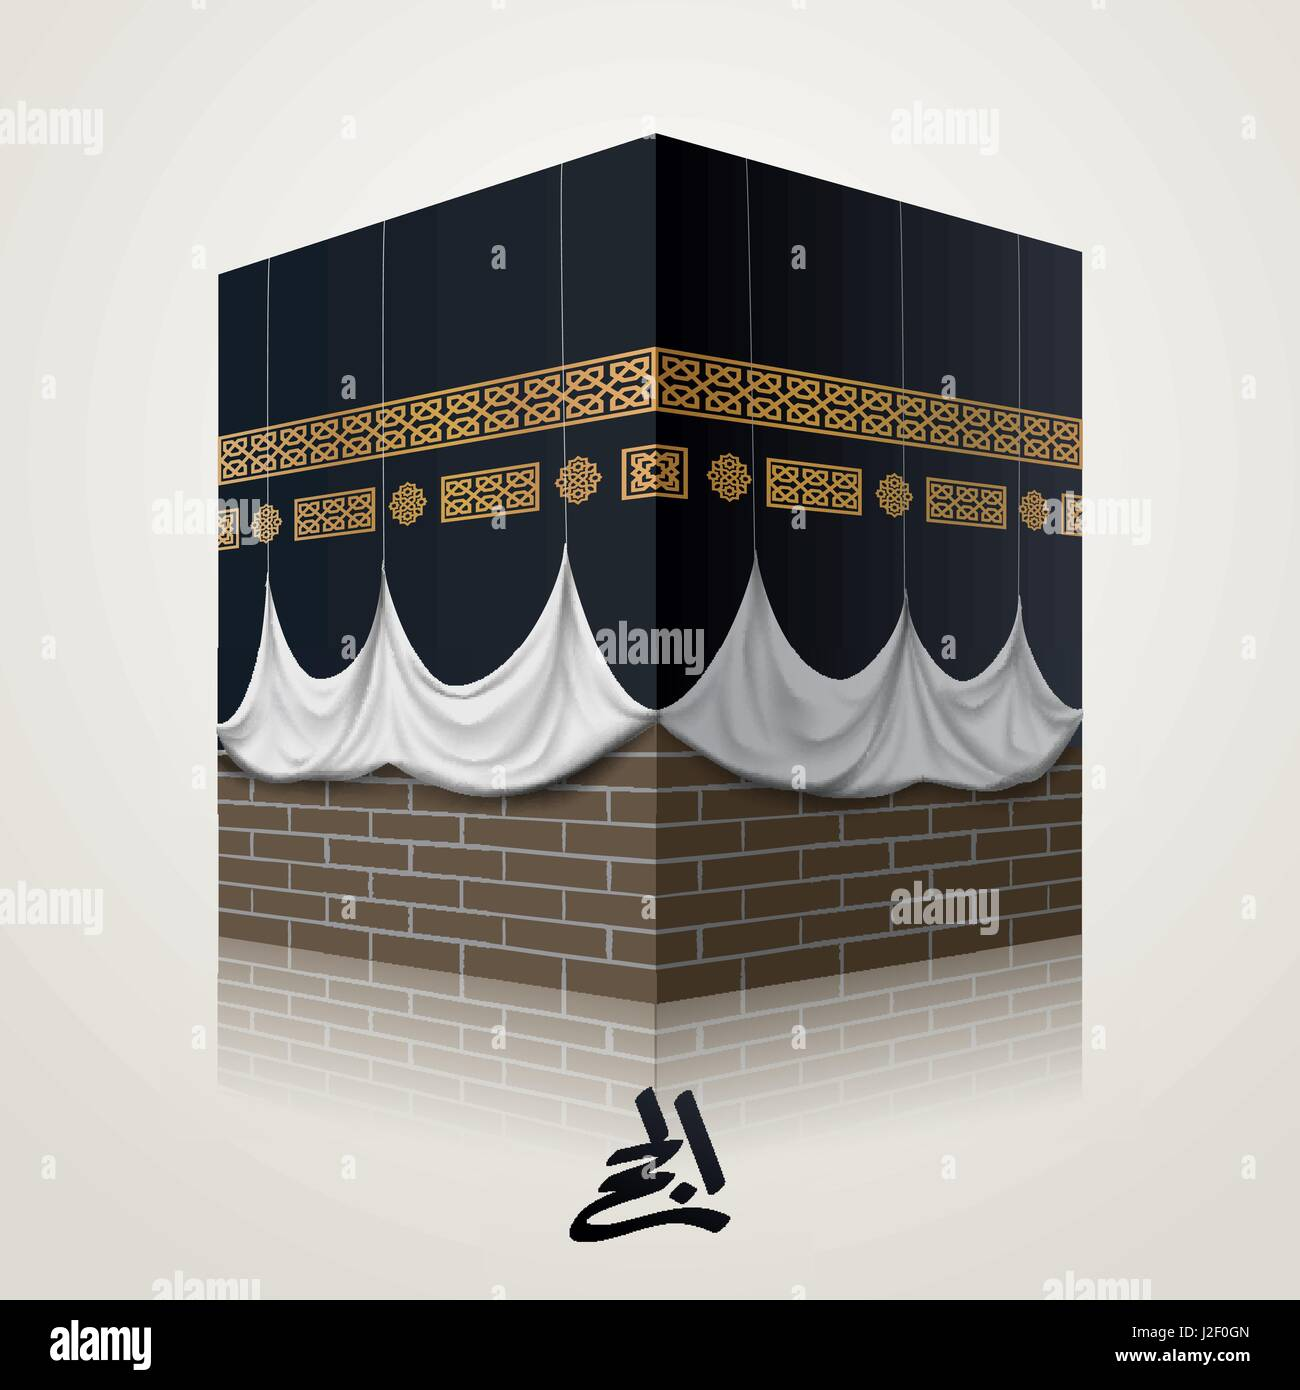 Umrah Banner: Islamic Vector Realistic Icon Illustration Kaaba For Hajj